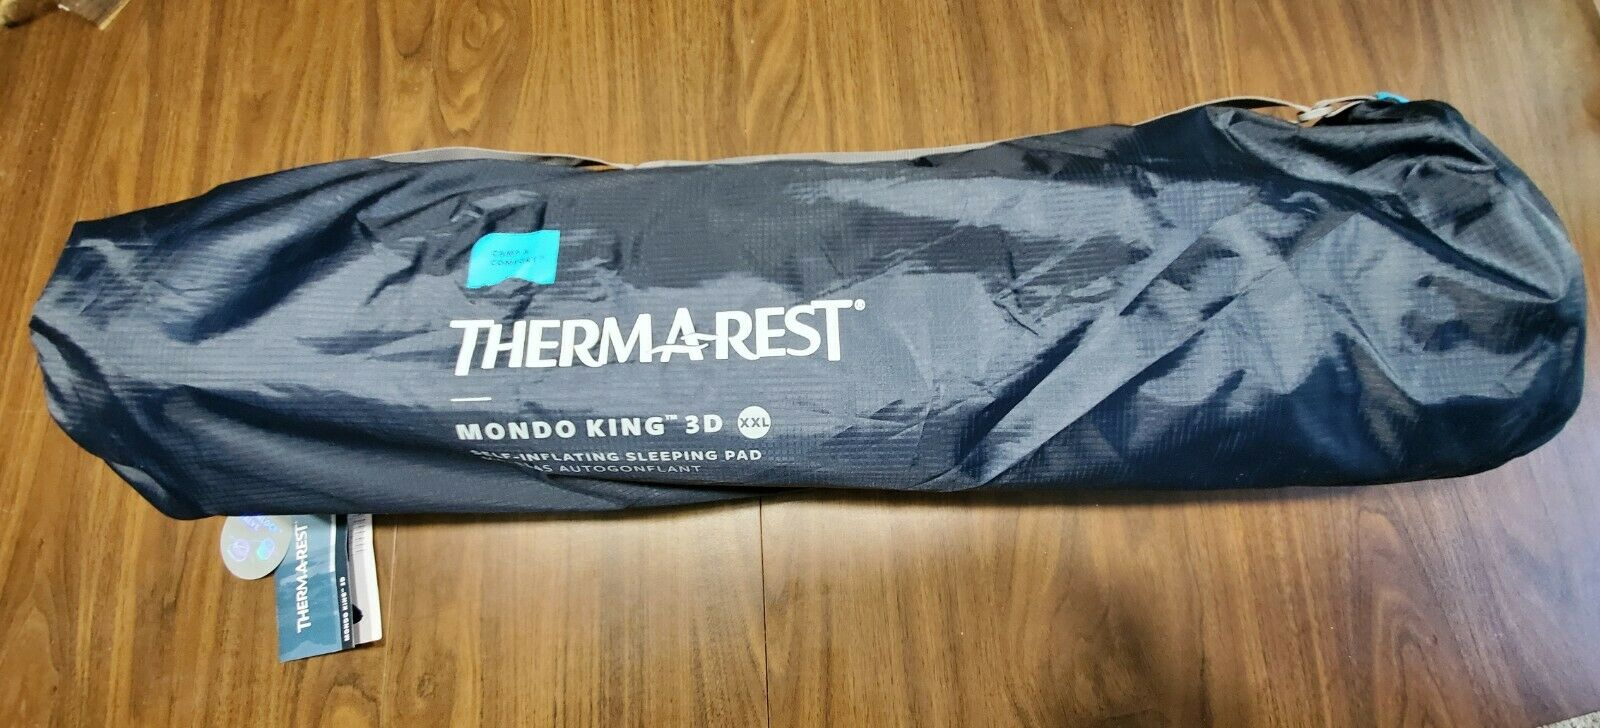 therm a rest mondoking 3d sleeping pad